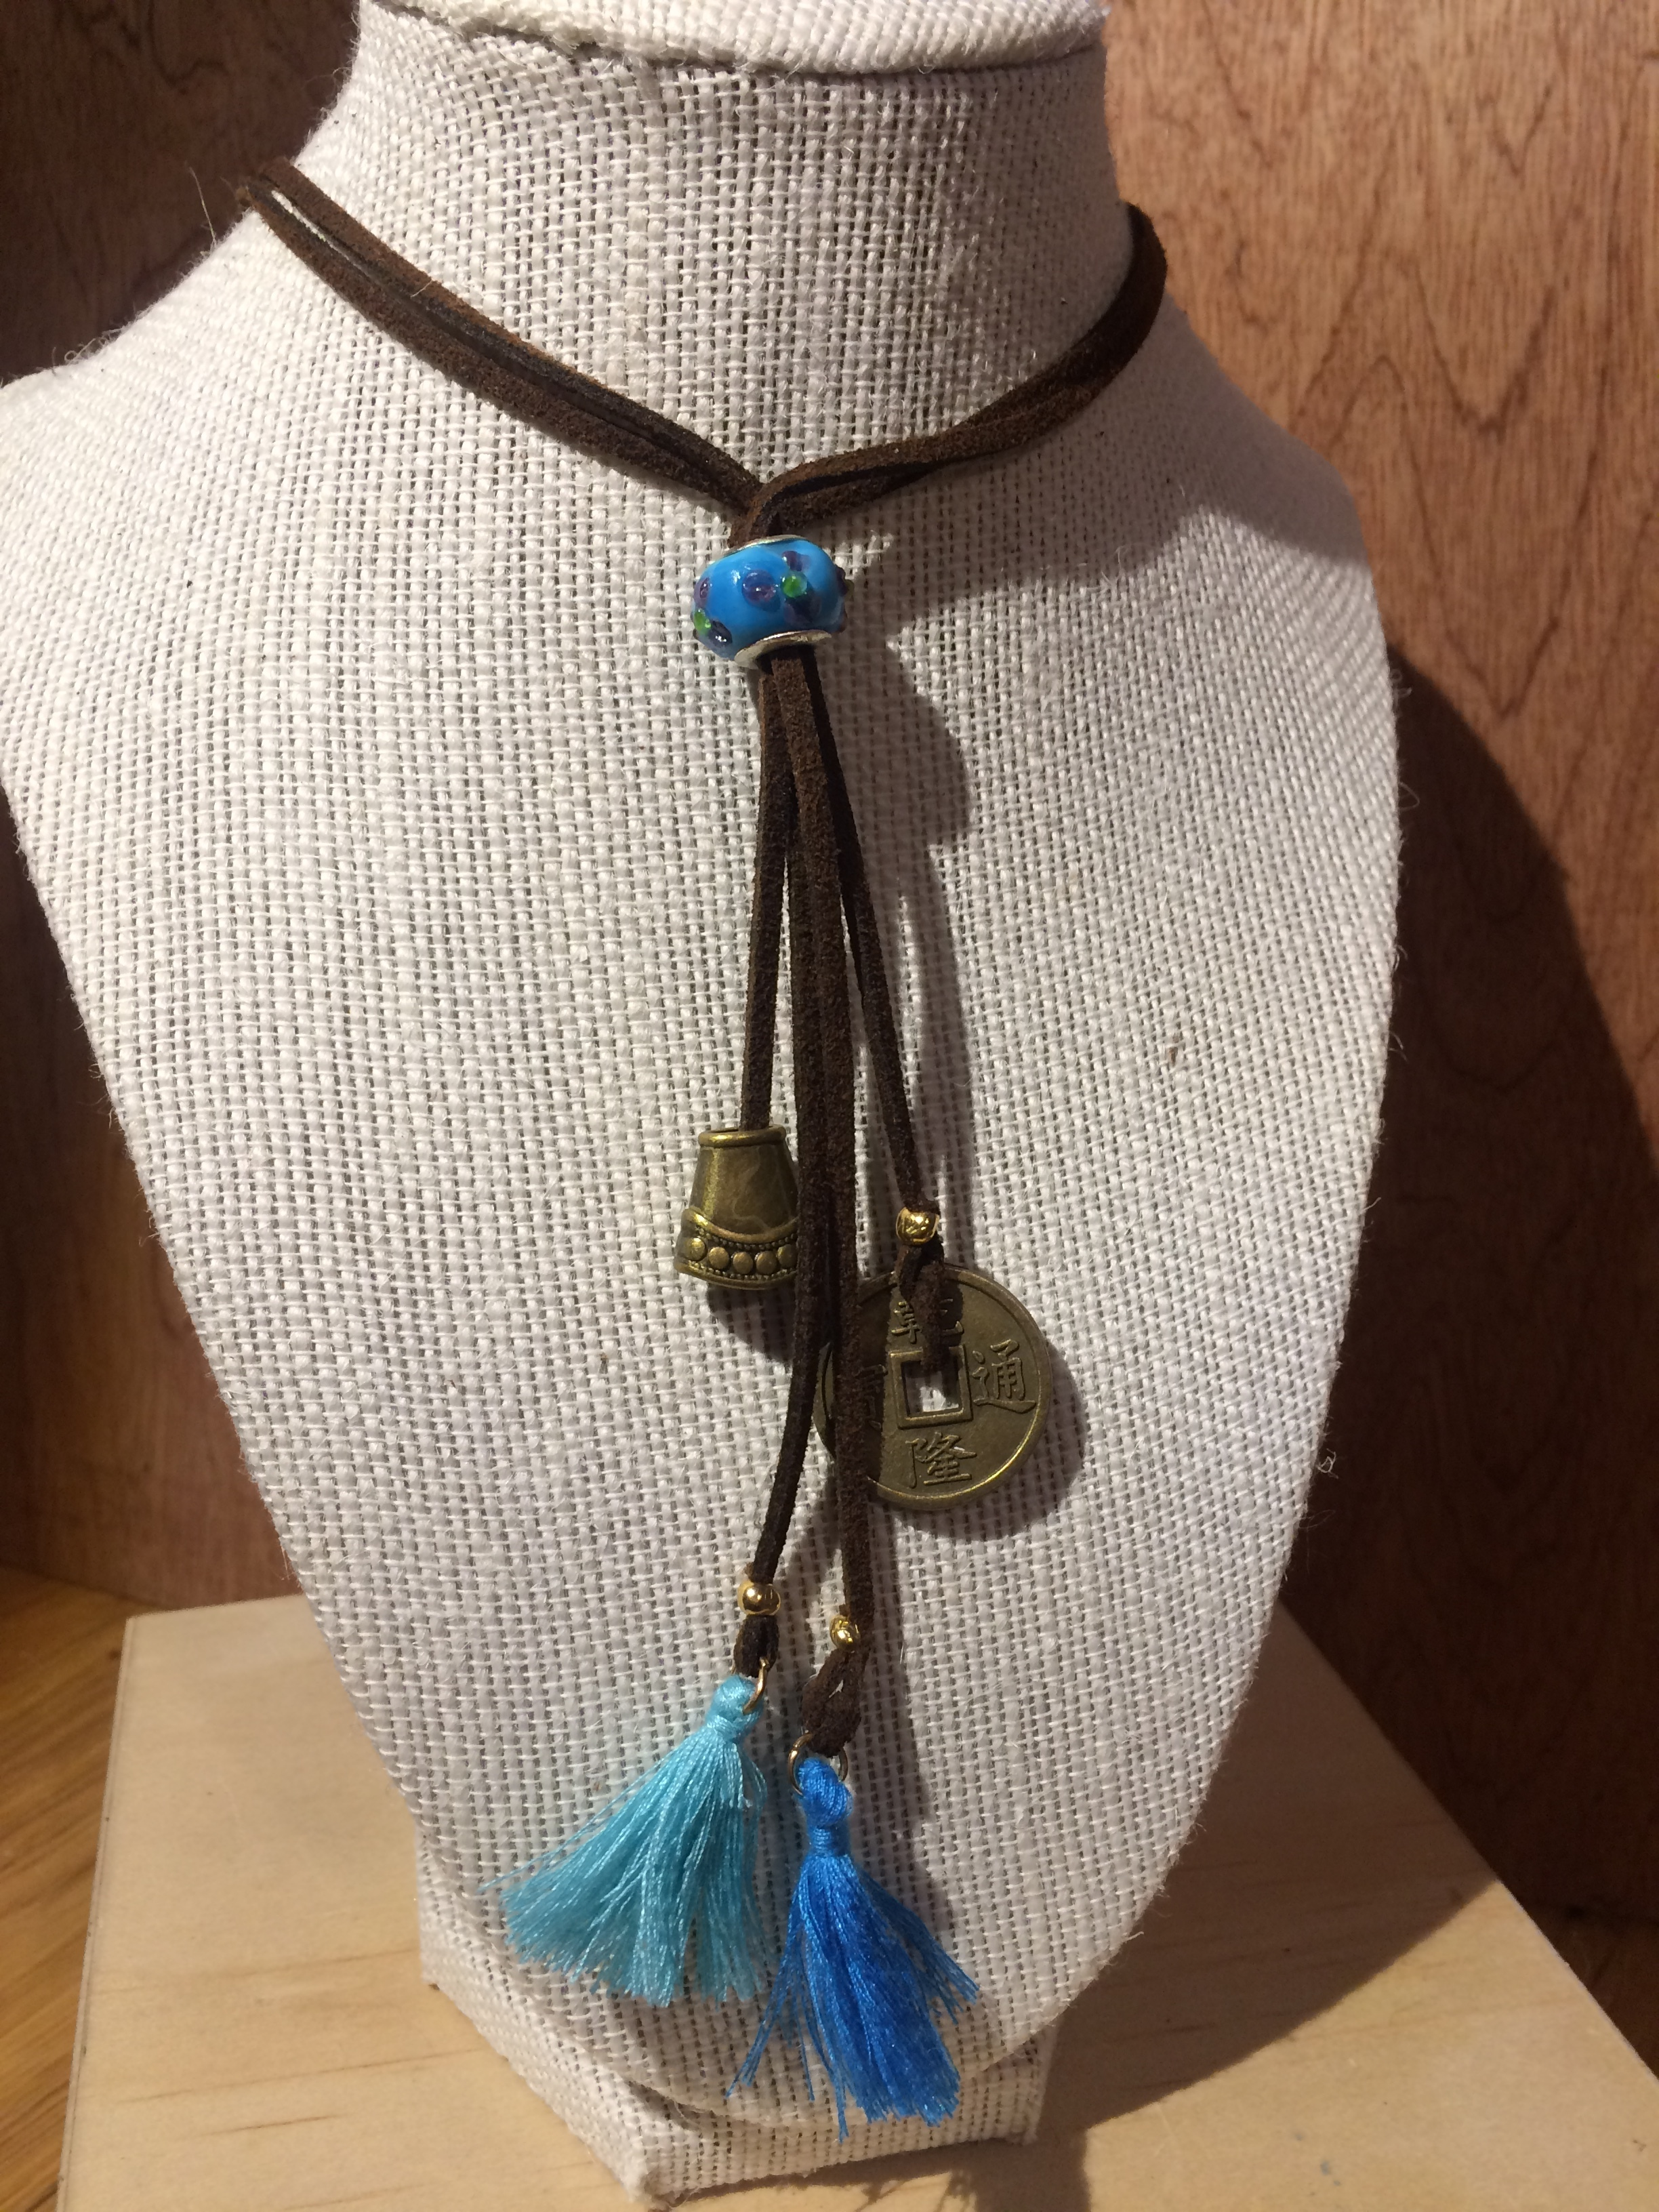 Leather BoHo Long Necklace with Brushed Gold Charms, Blue Glass Bead, and Blue Tassels: #16